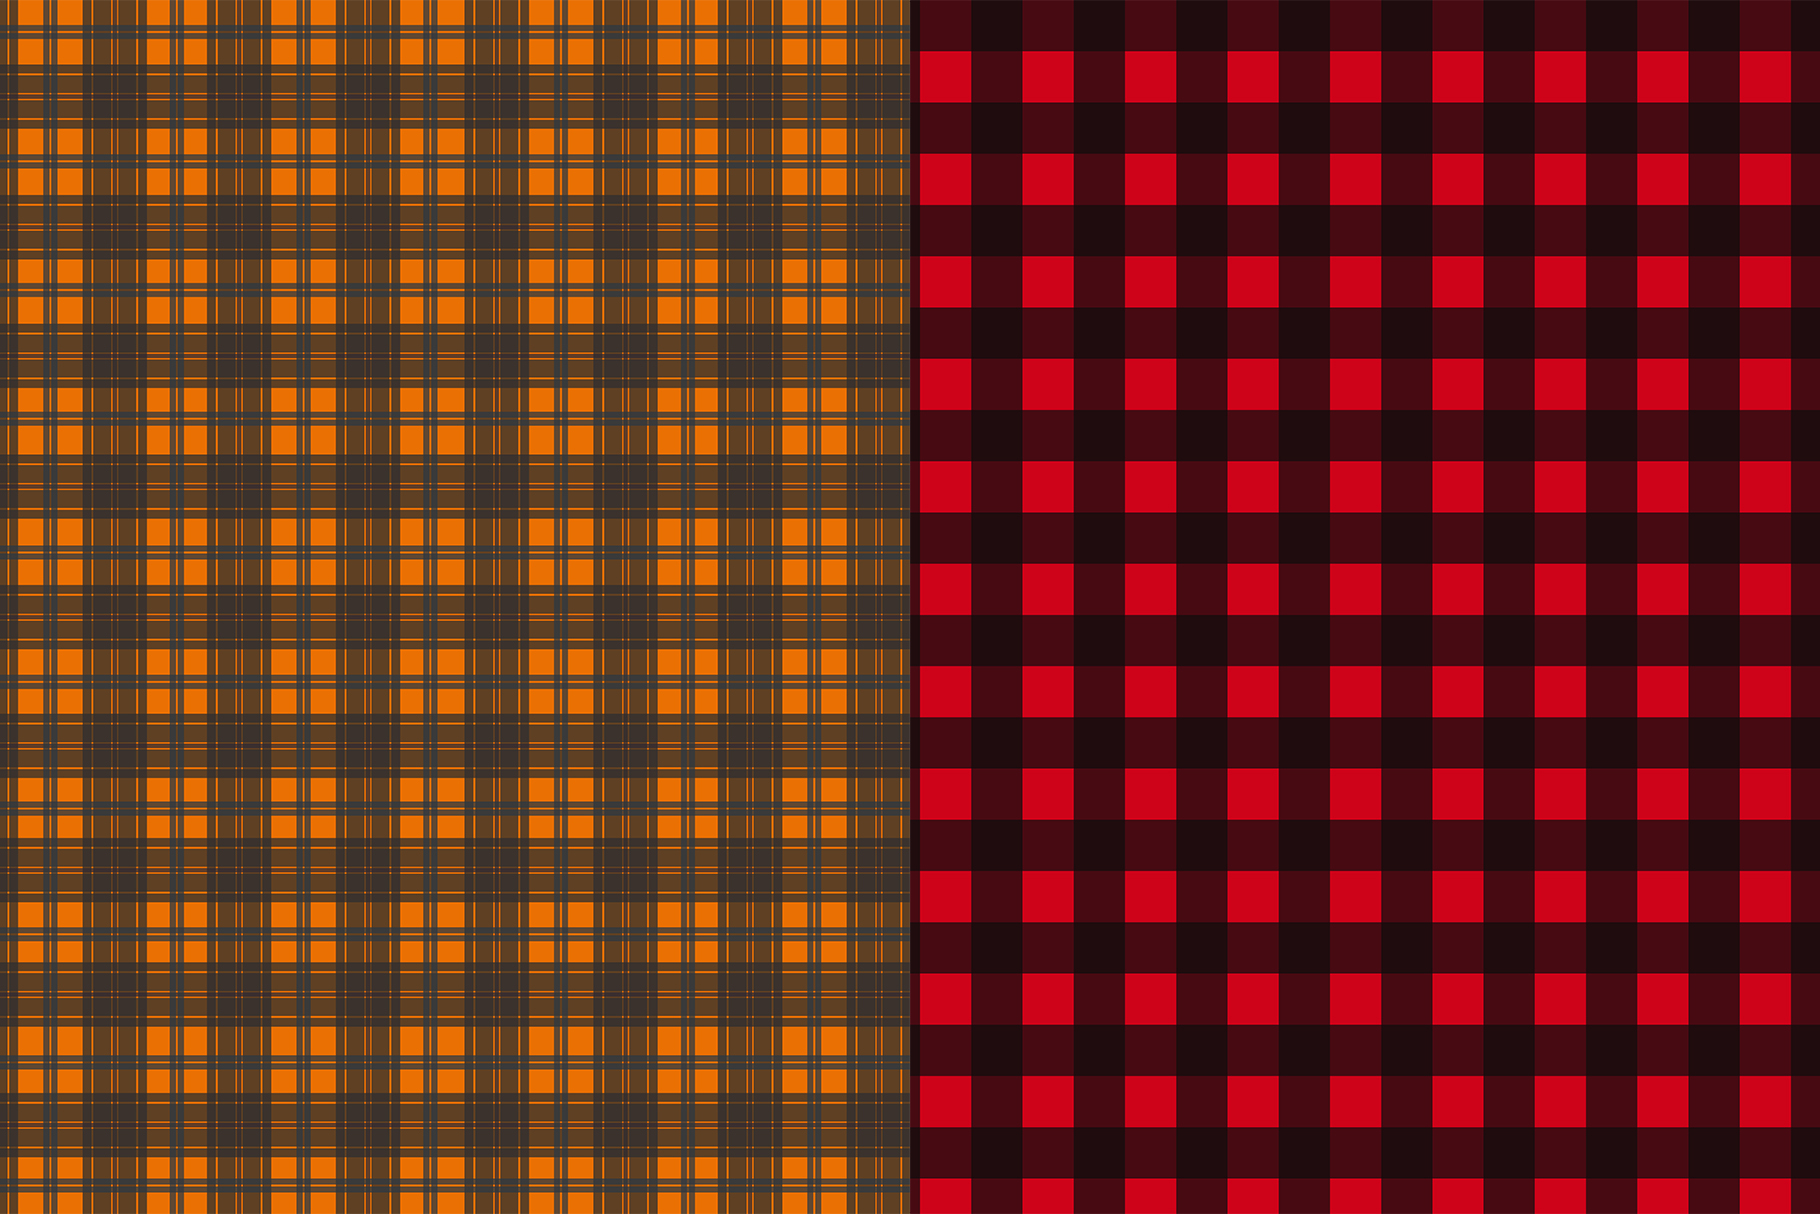 10 Checkered Patterns example image 6